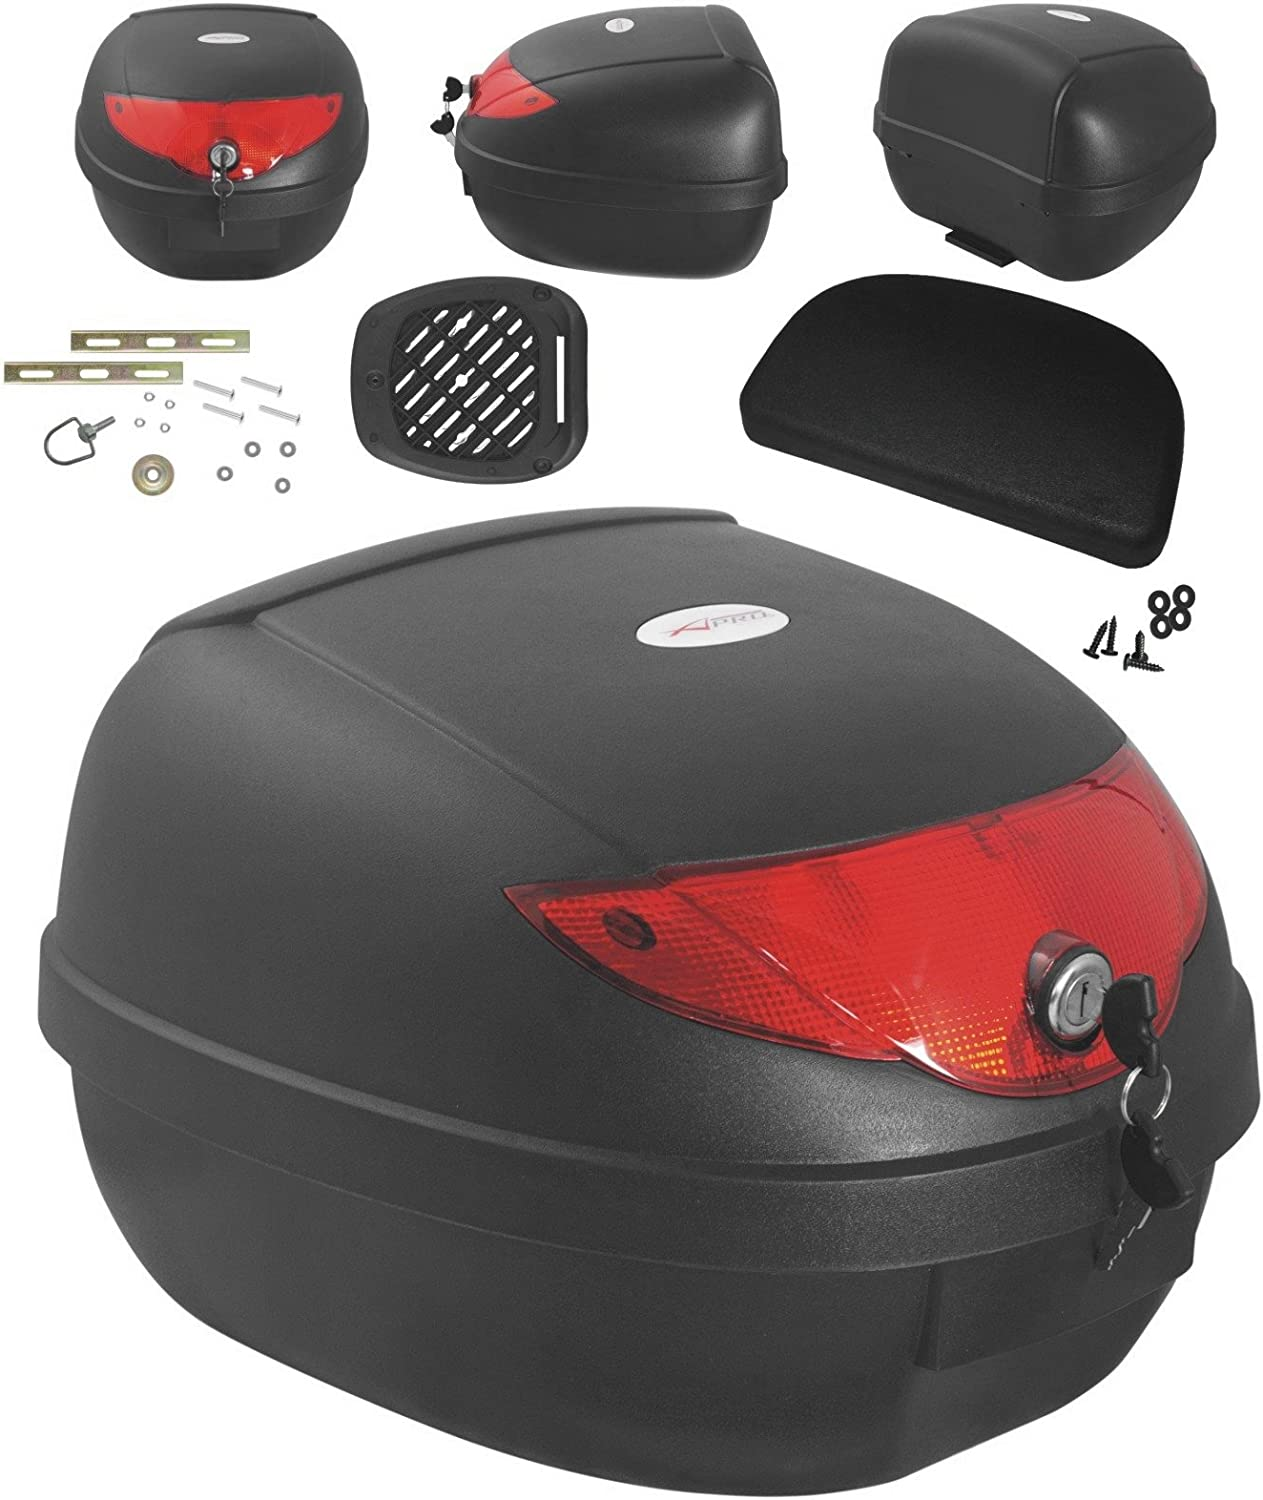 Moto Scooter Top Case 28L Universel Plaque Adaptable Bagage Valise evec Dossier